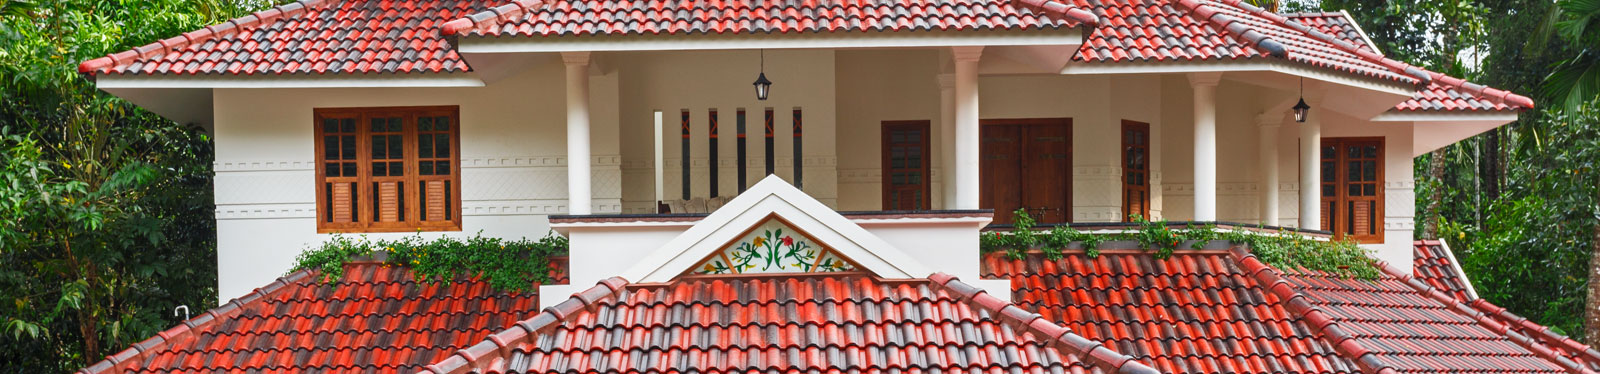 pionnier roofing solutions roof tiles india